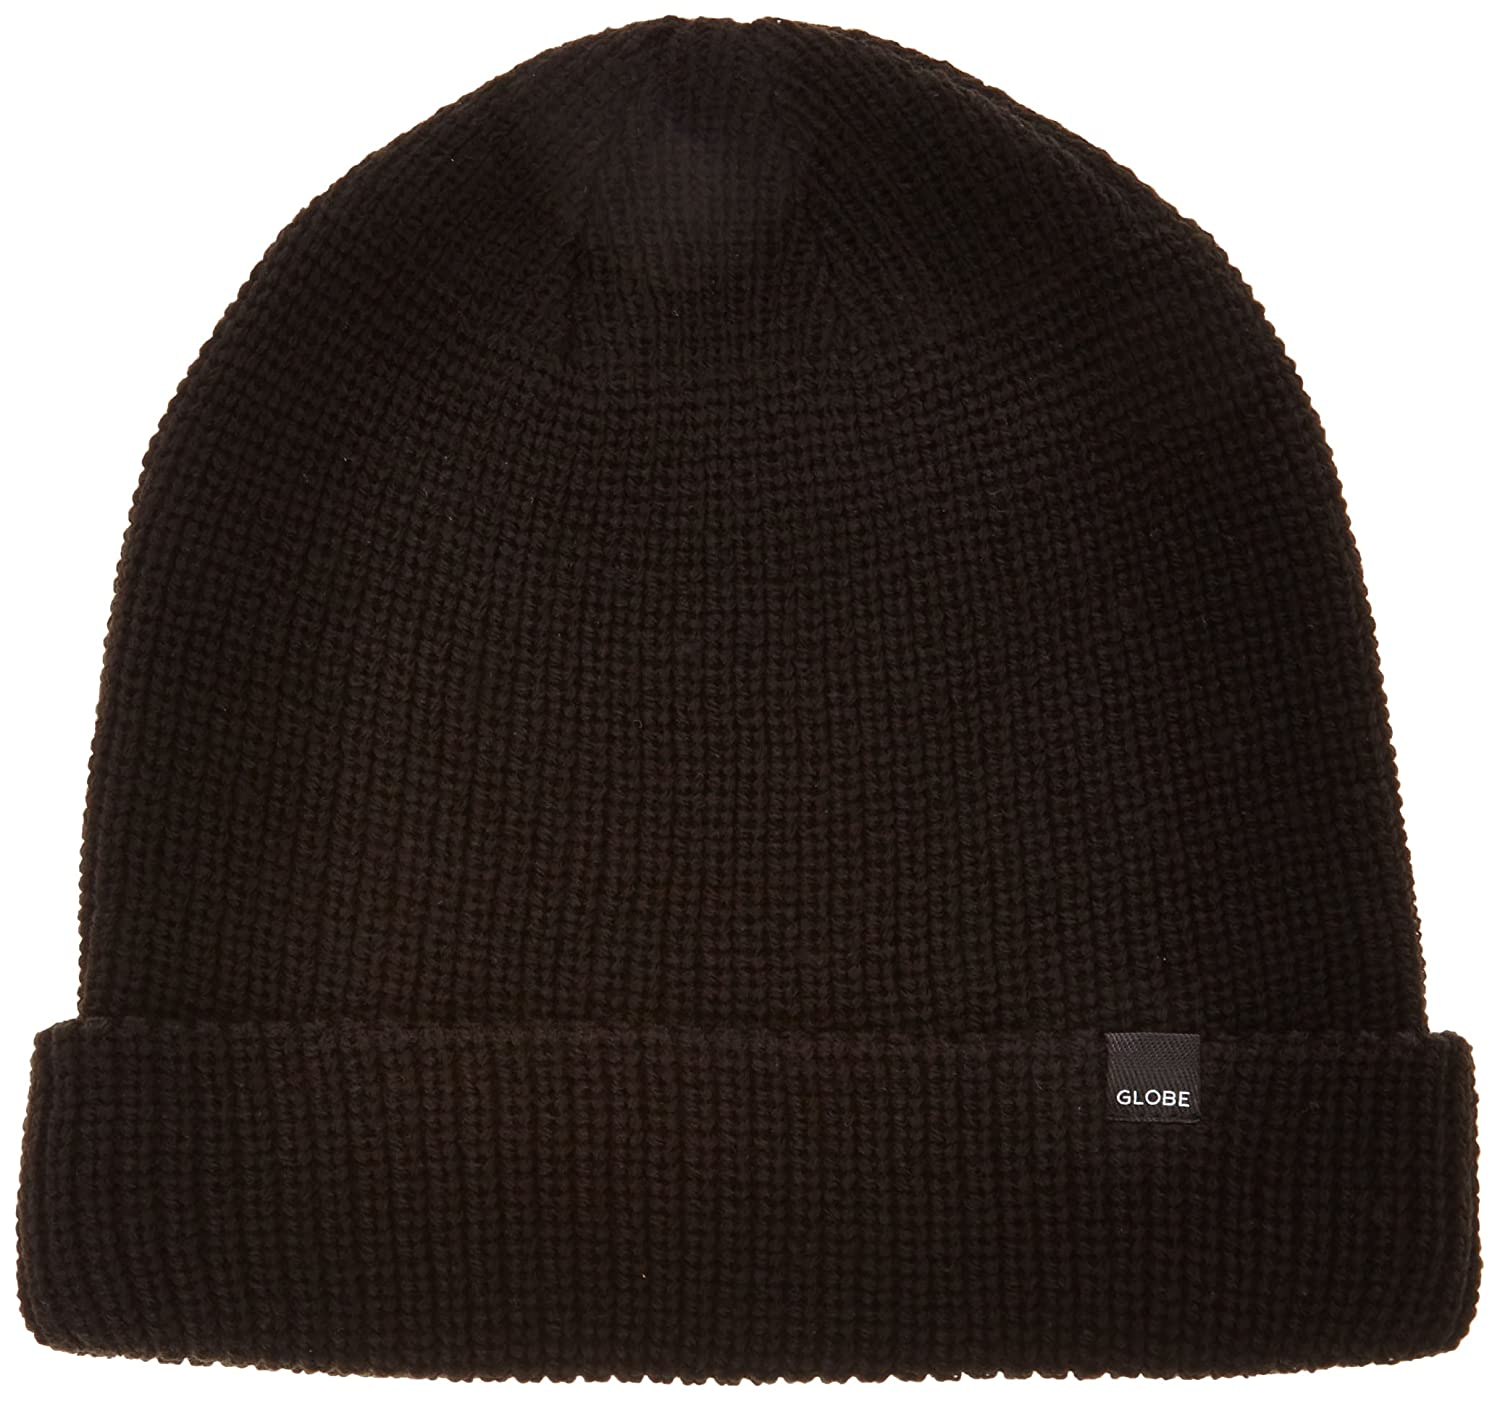 b2994e41397 Globe Halladay Beanie Hat Mens  Globe  Amazon.co.uk  Sports   Outdoors